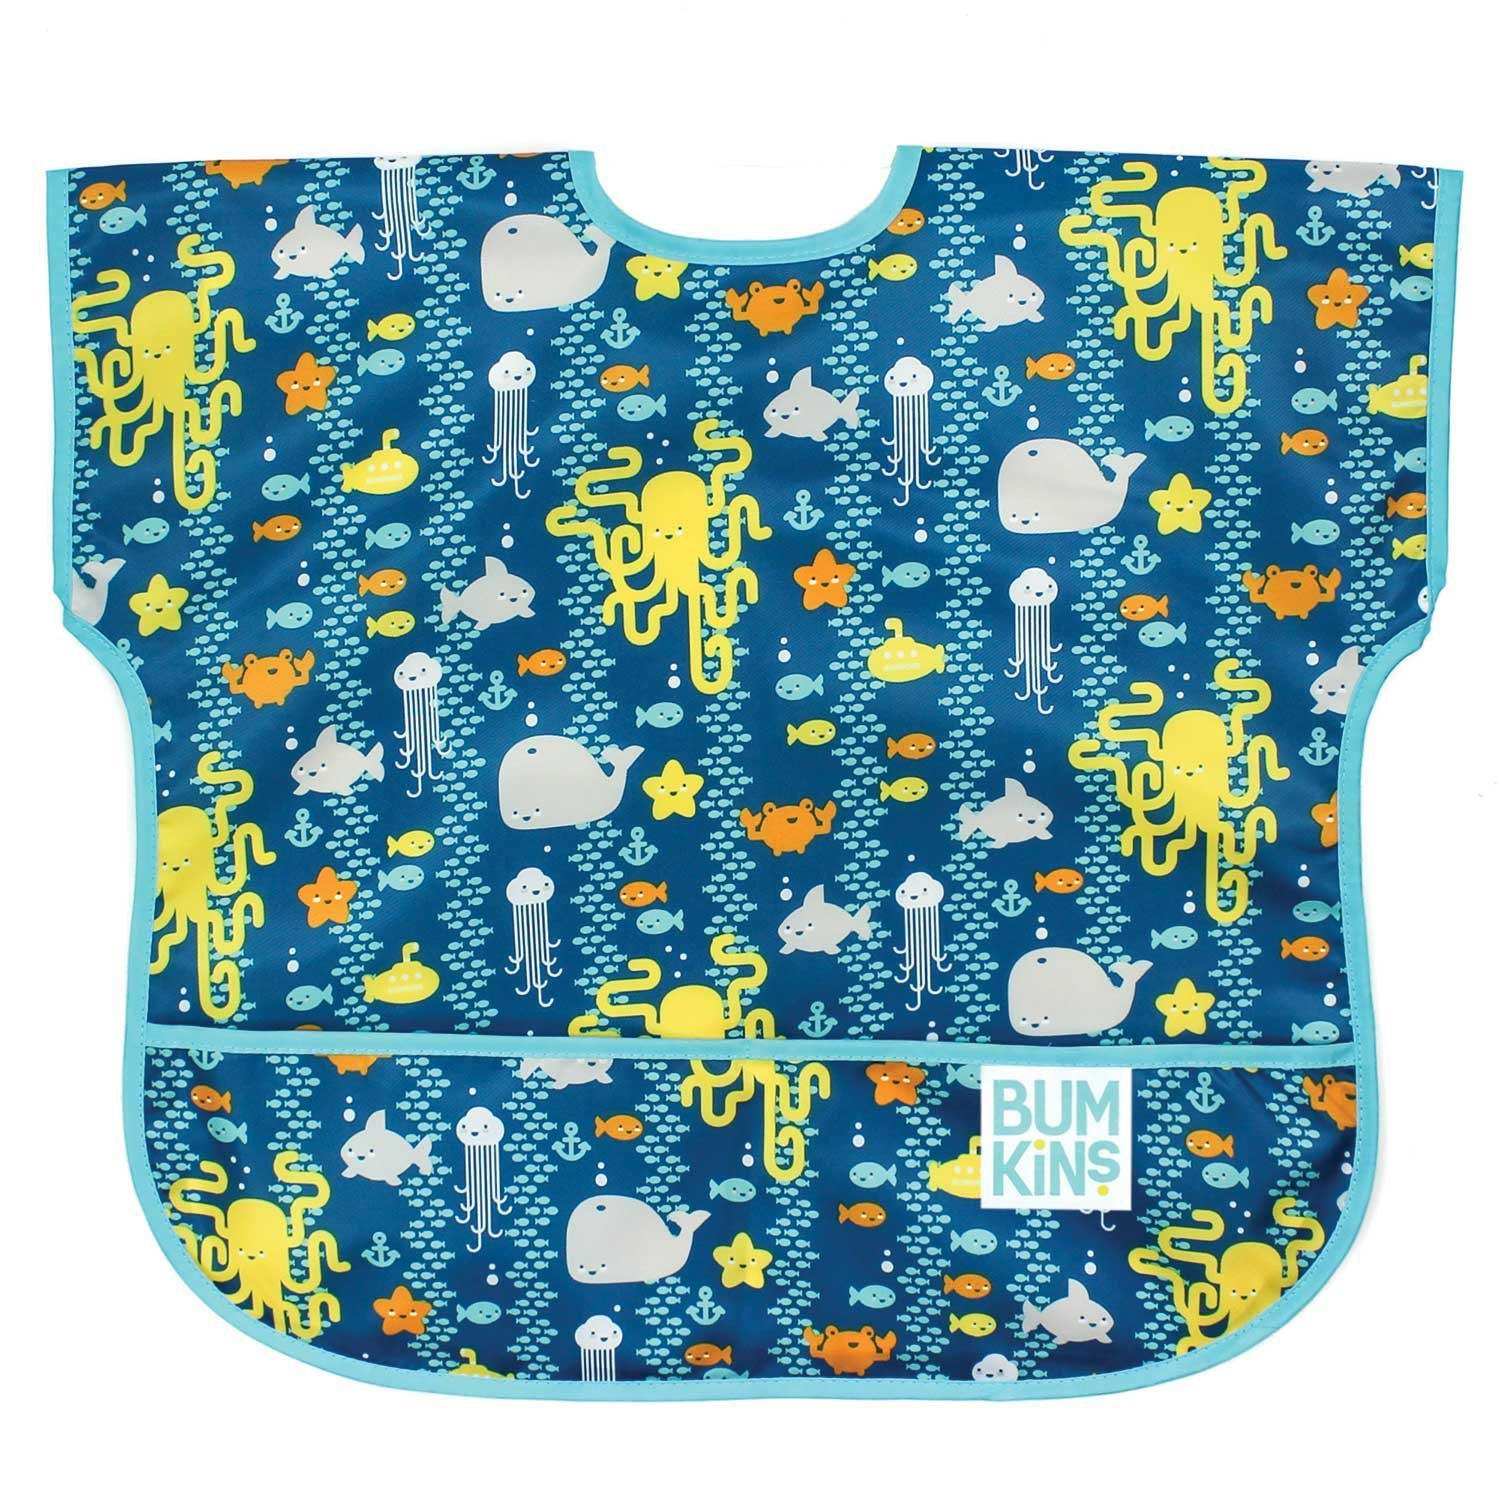 Bumkins Waterproof Junior Bib, Hearts, 1-3 Years U-10